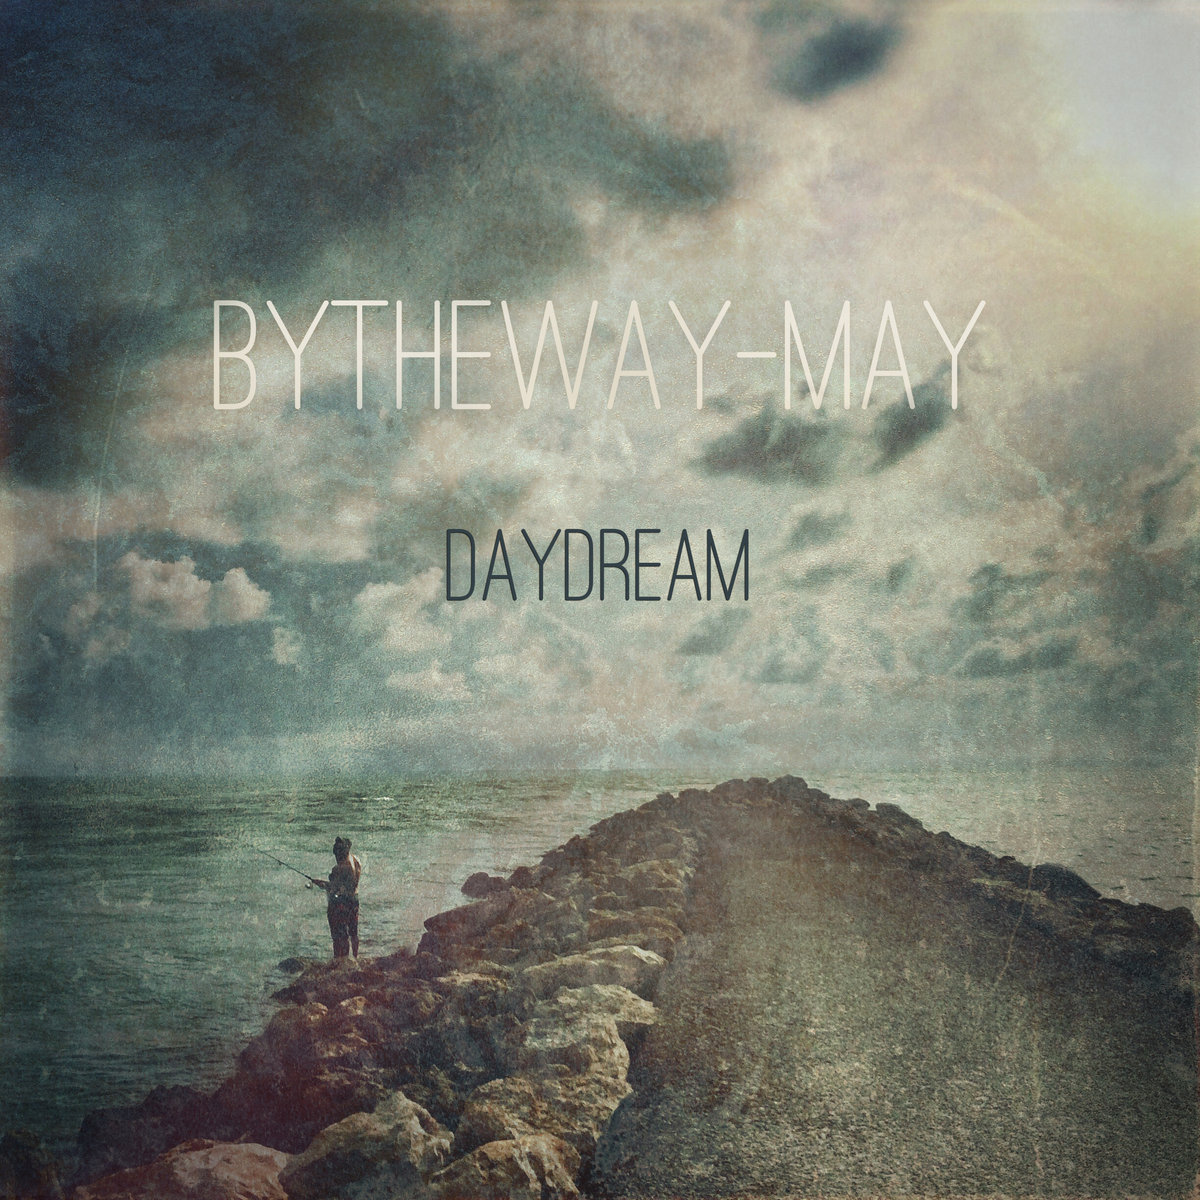 Jesse Powell You Mp3 Download: Bytheway-May